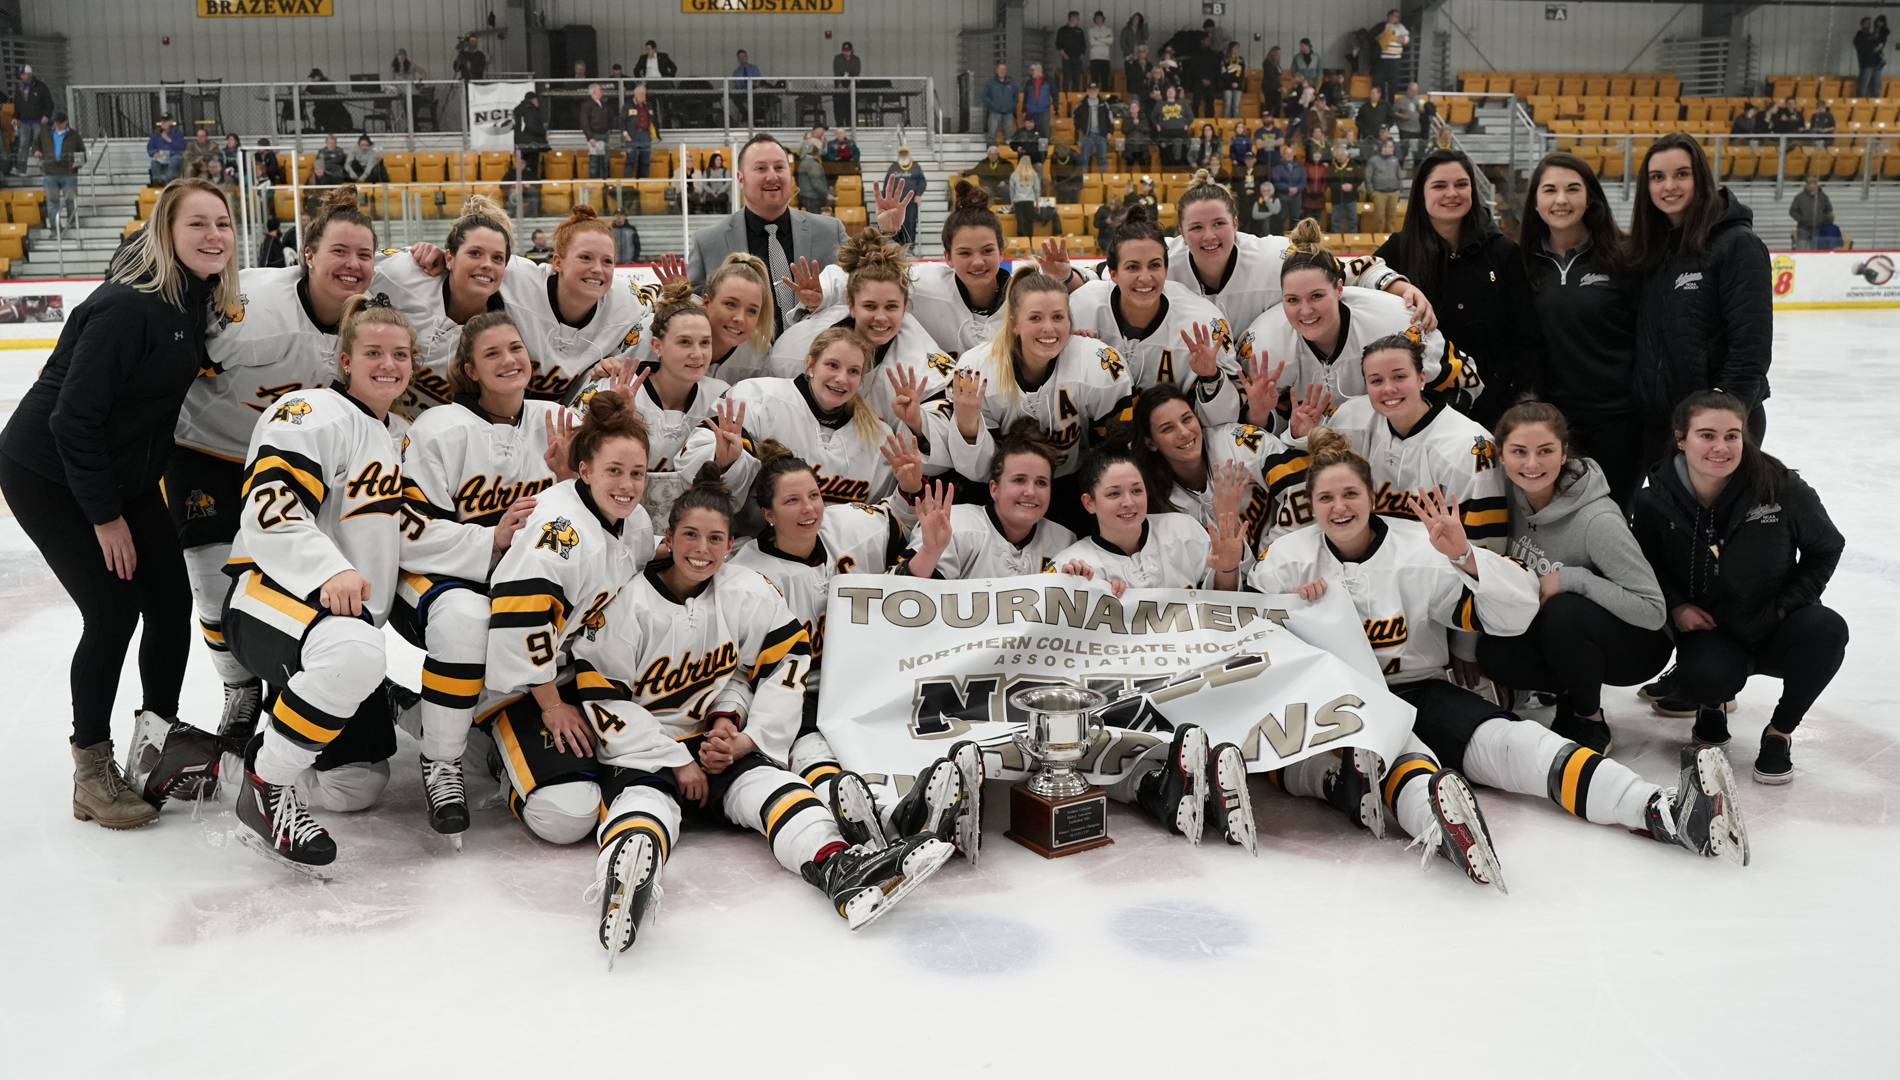 Adrian celebrates winning the Slaats Cup after defeating St. Scholastica 3-2 in double overtime on Sunday (Photo by Mike Dickie).